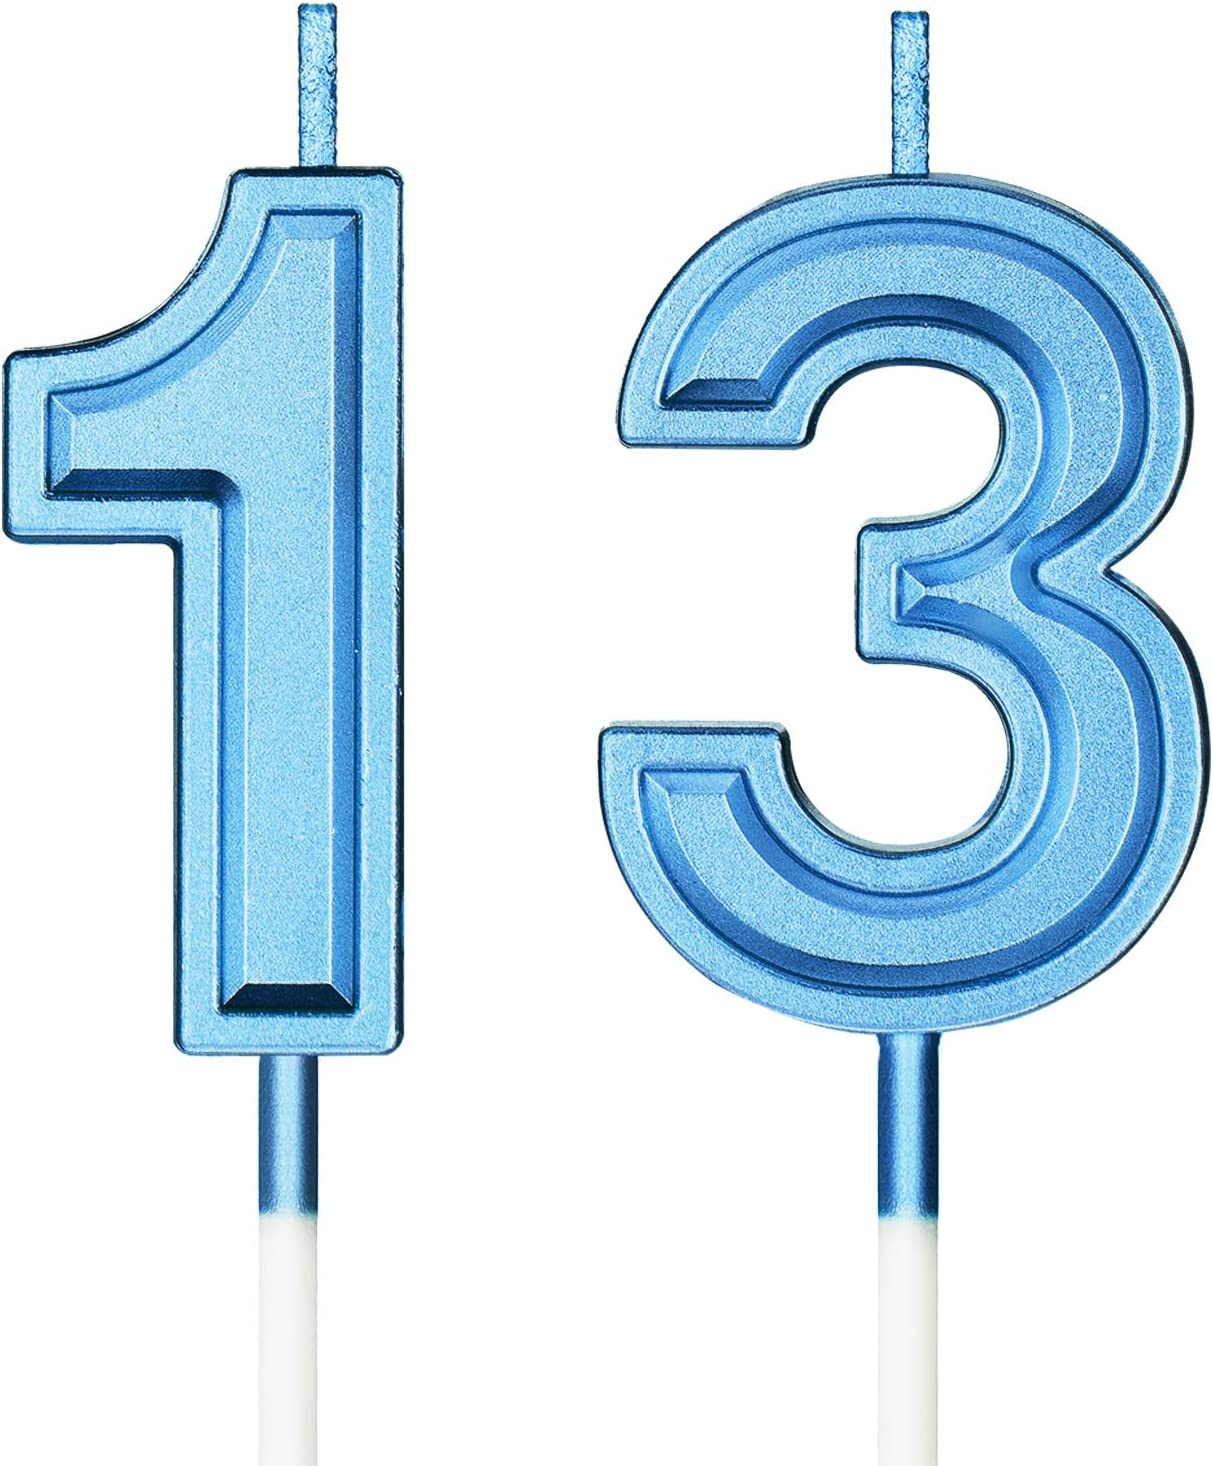 Syhood 13th Birthday online shop Candles Cake Numeral Max 61% OFF Happy